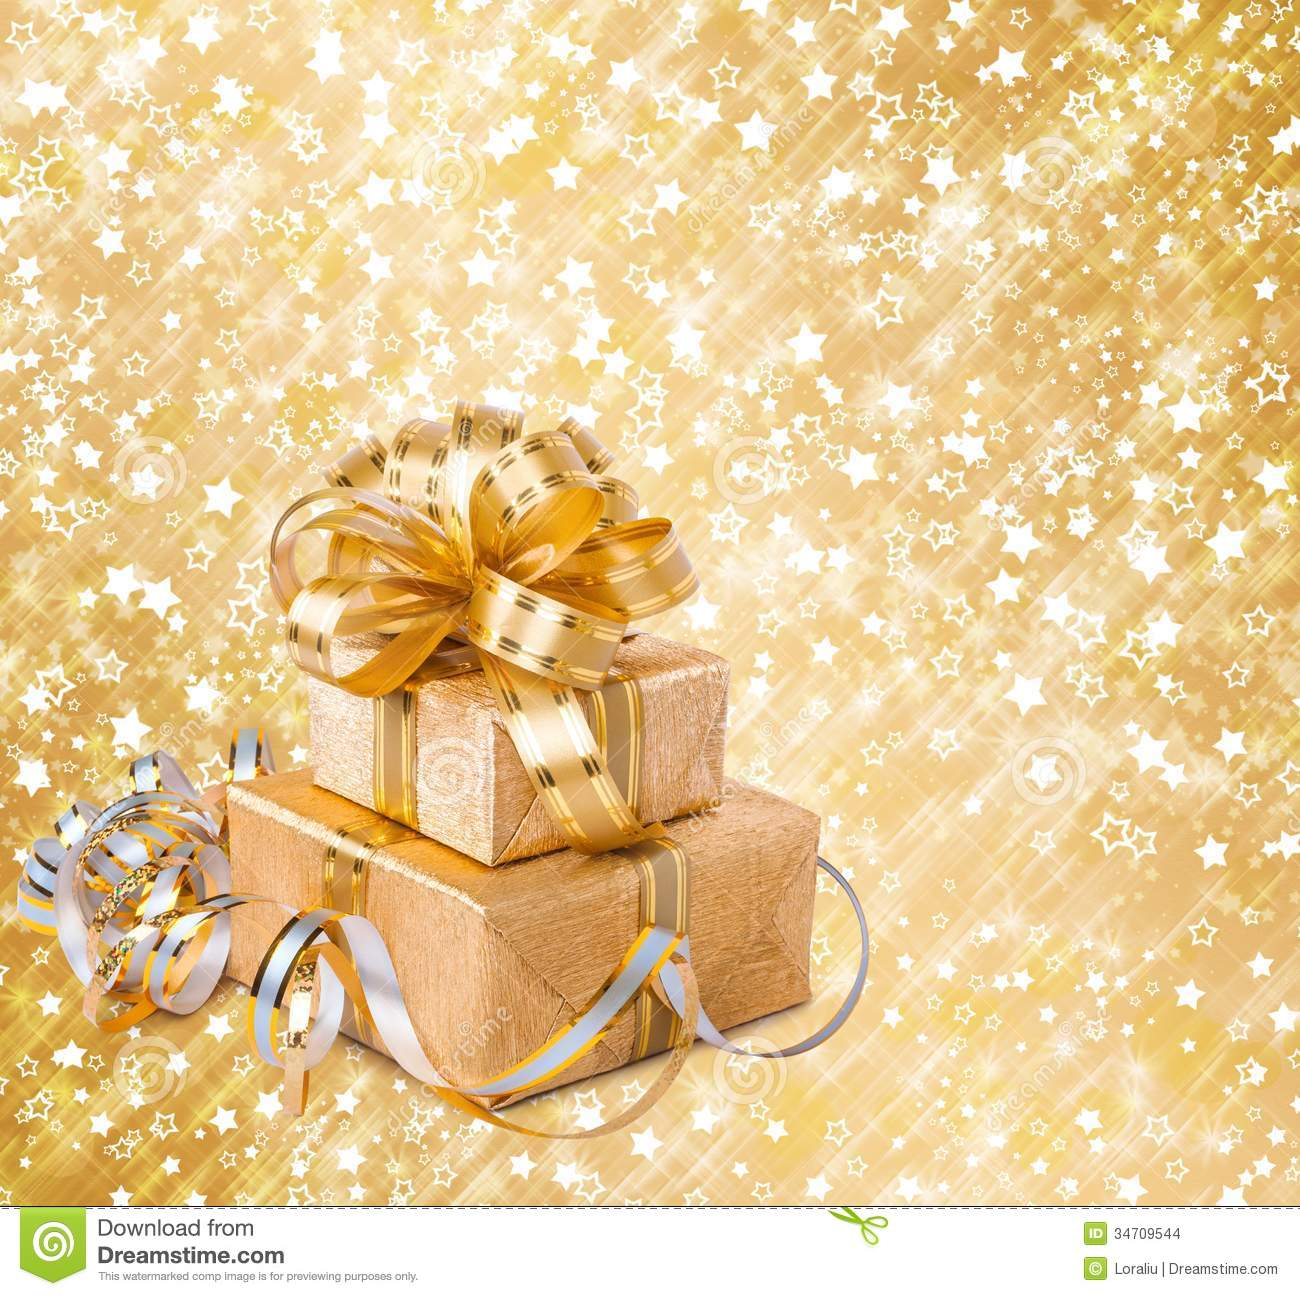 Gift Box In Gold Wrapping Paper Stock Images - Image: 34709544